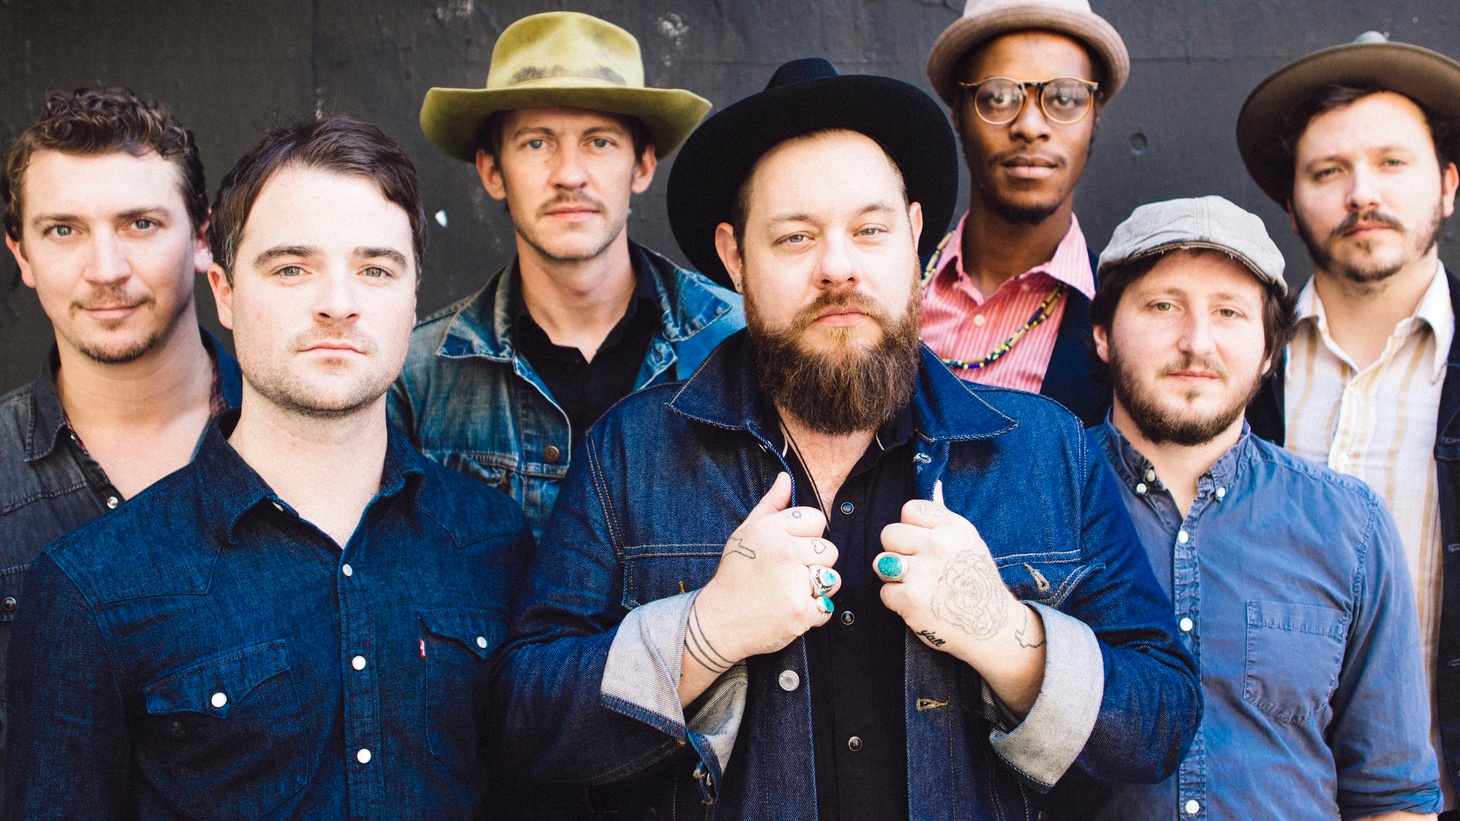 The soul stirring songs of Nathaniel Rateliff and the Night Sweats – combined with a bombastic live show – have quickly catapulted the band into the spotlight.